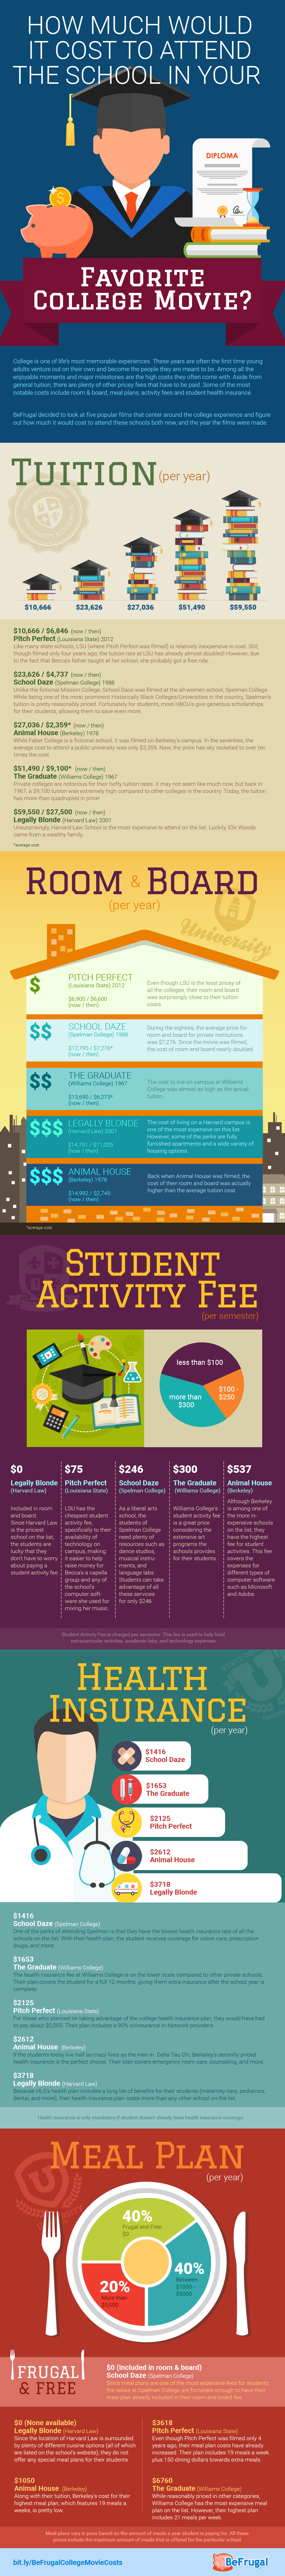 BeFrugal Movie Colleges Infographic